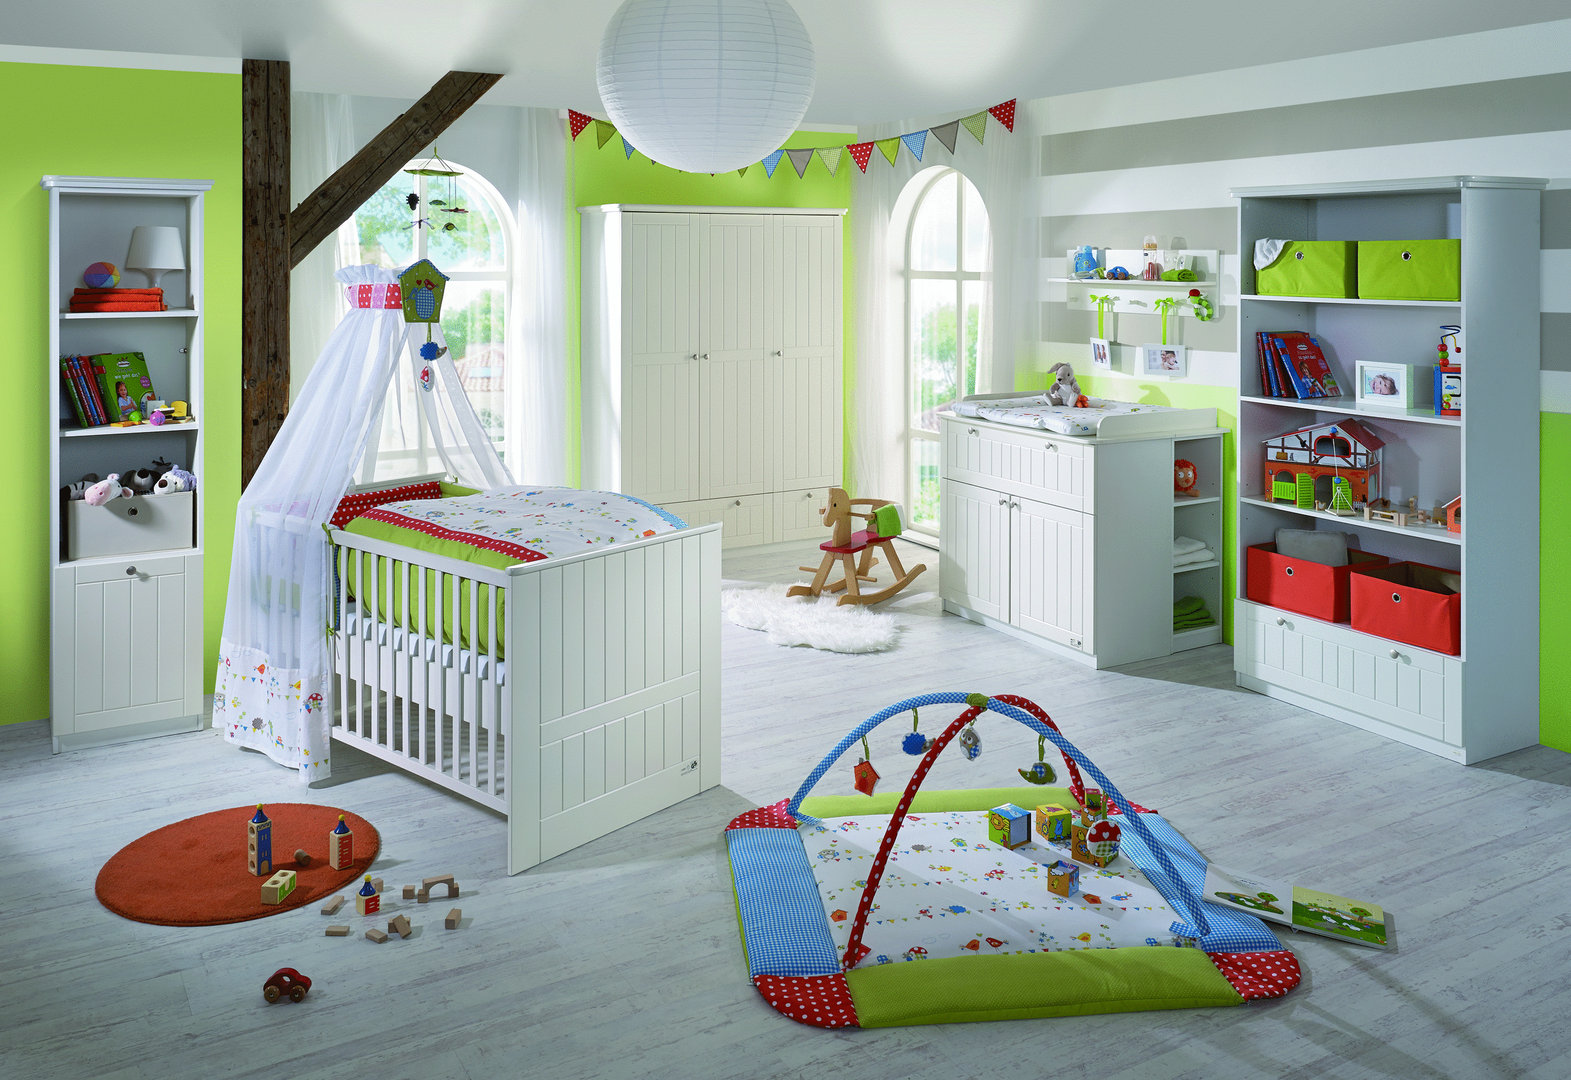 Roba zimmer dreamworld 2 bett wickelkommode schrank for Kinderzimmer ab 3